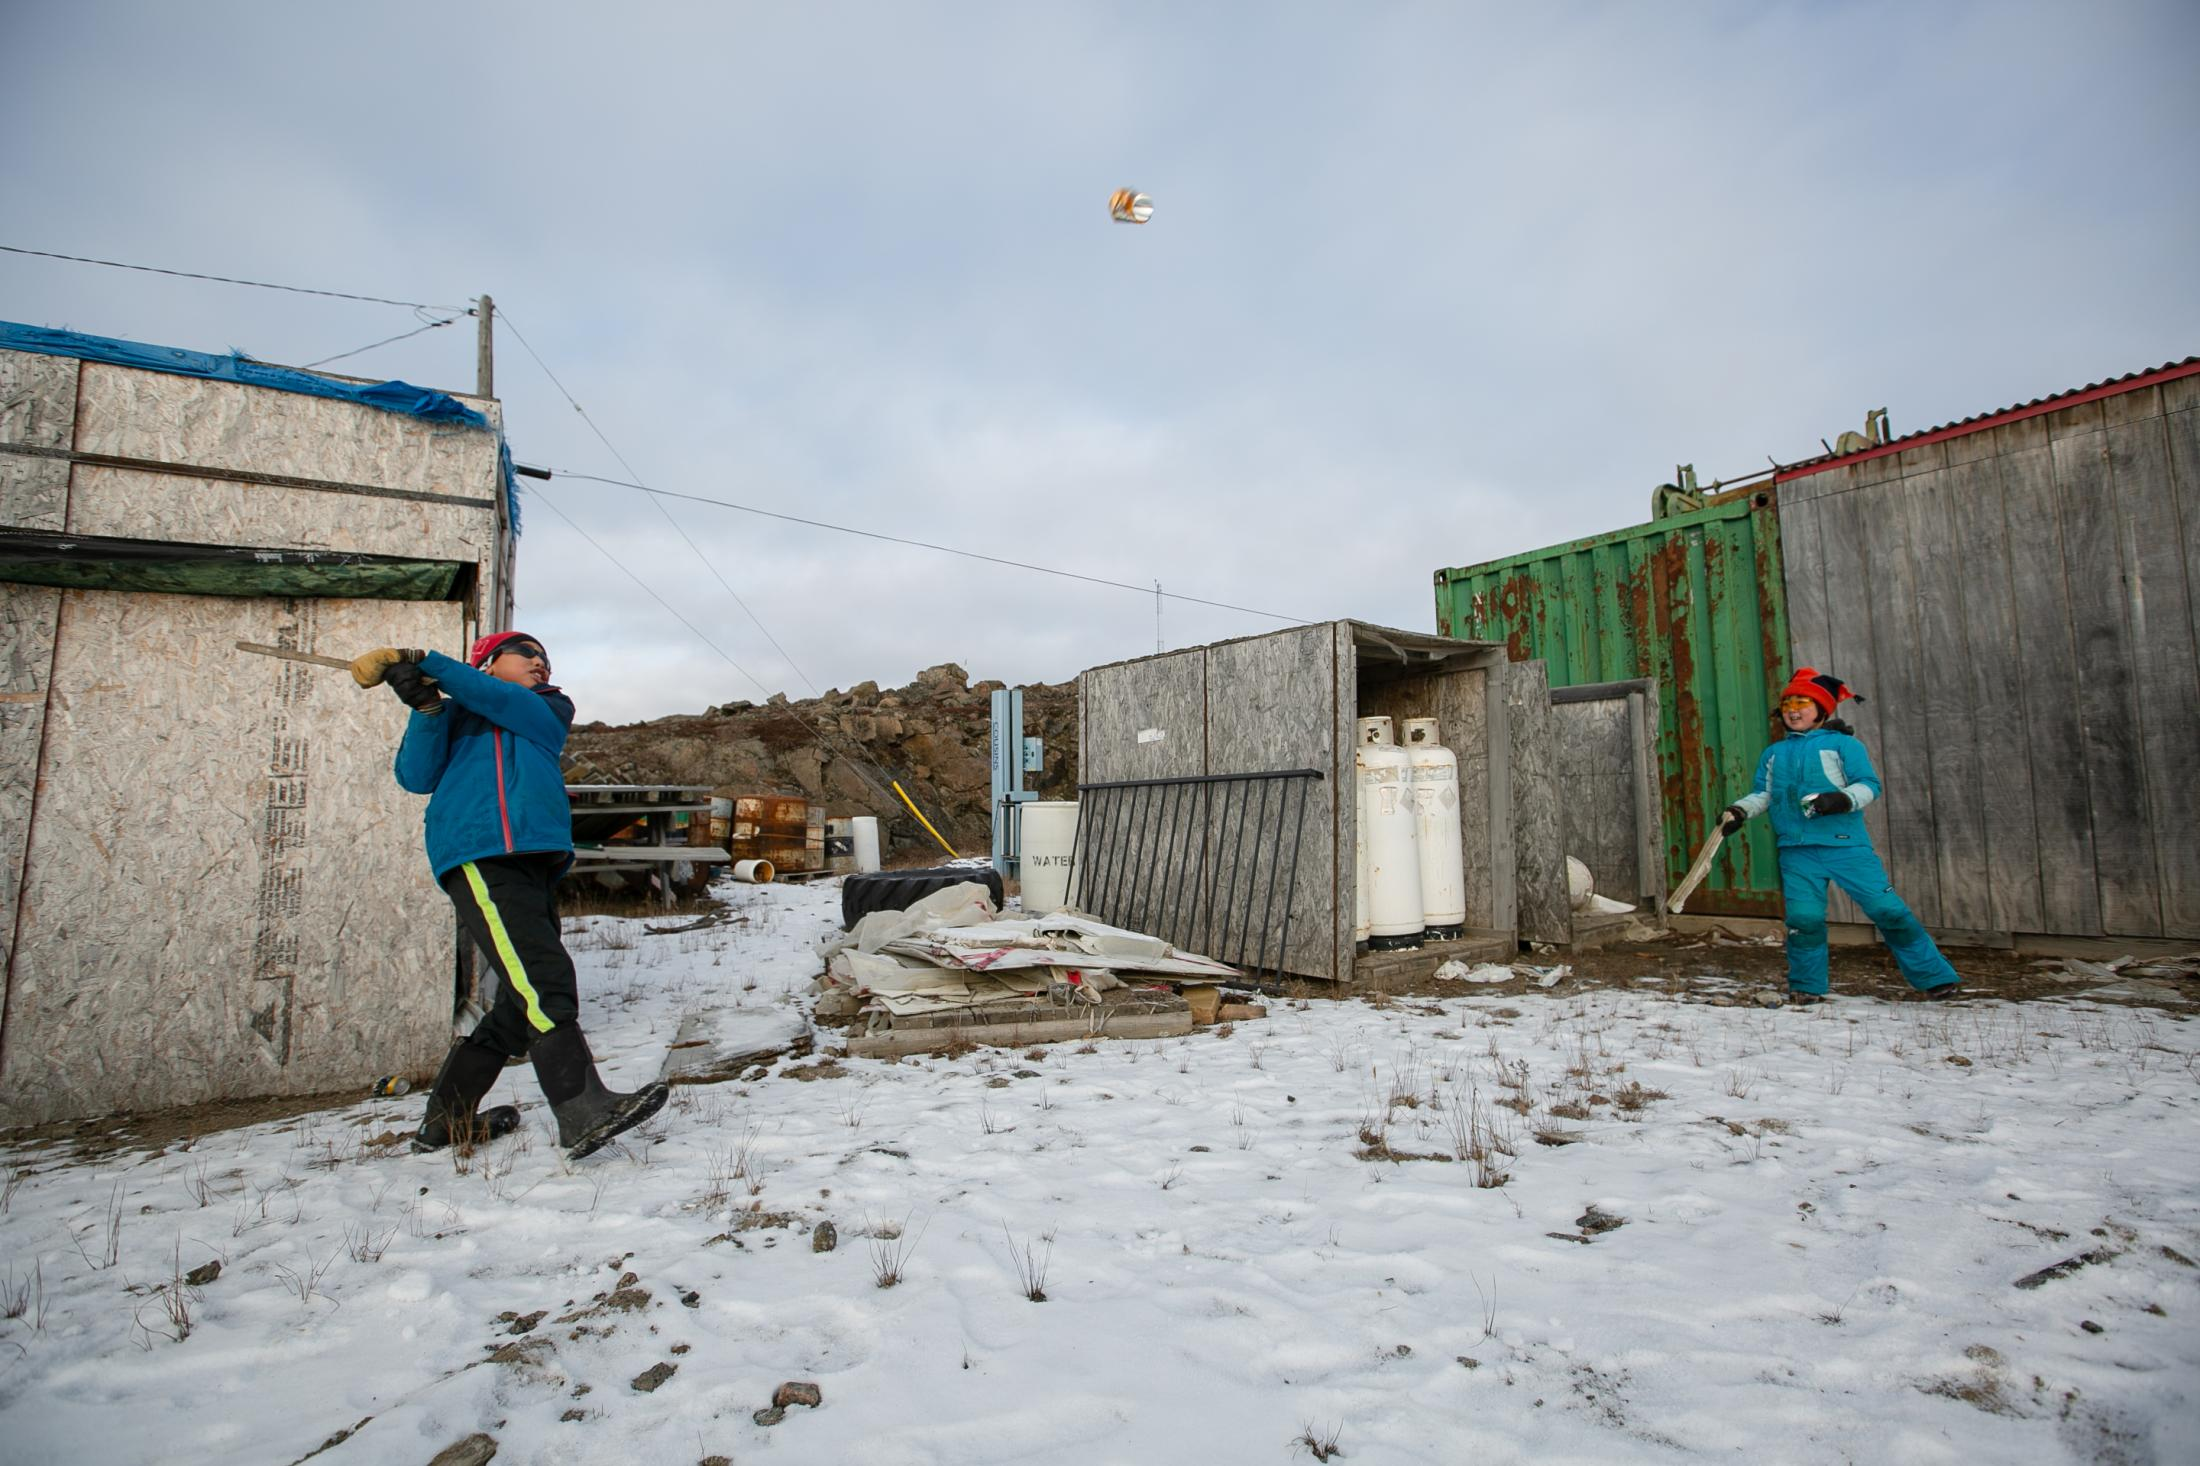 Inuki Wilman, left, and Béatrice Allerton have fun playing baseball with a pop can to pass time while Kaniq works on his hunting tools during a workshop.